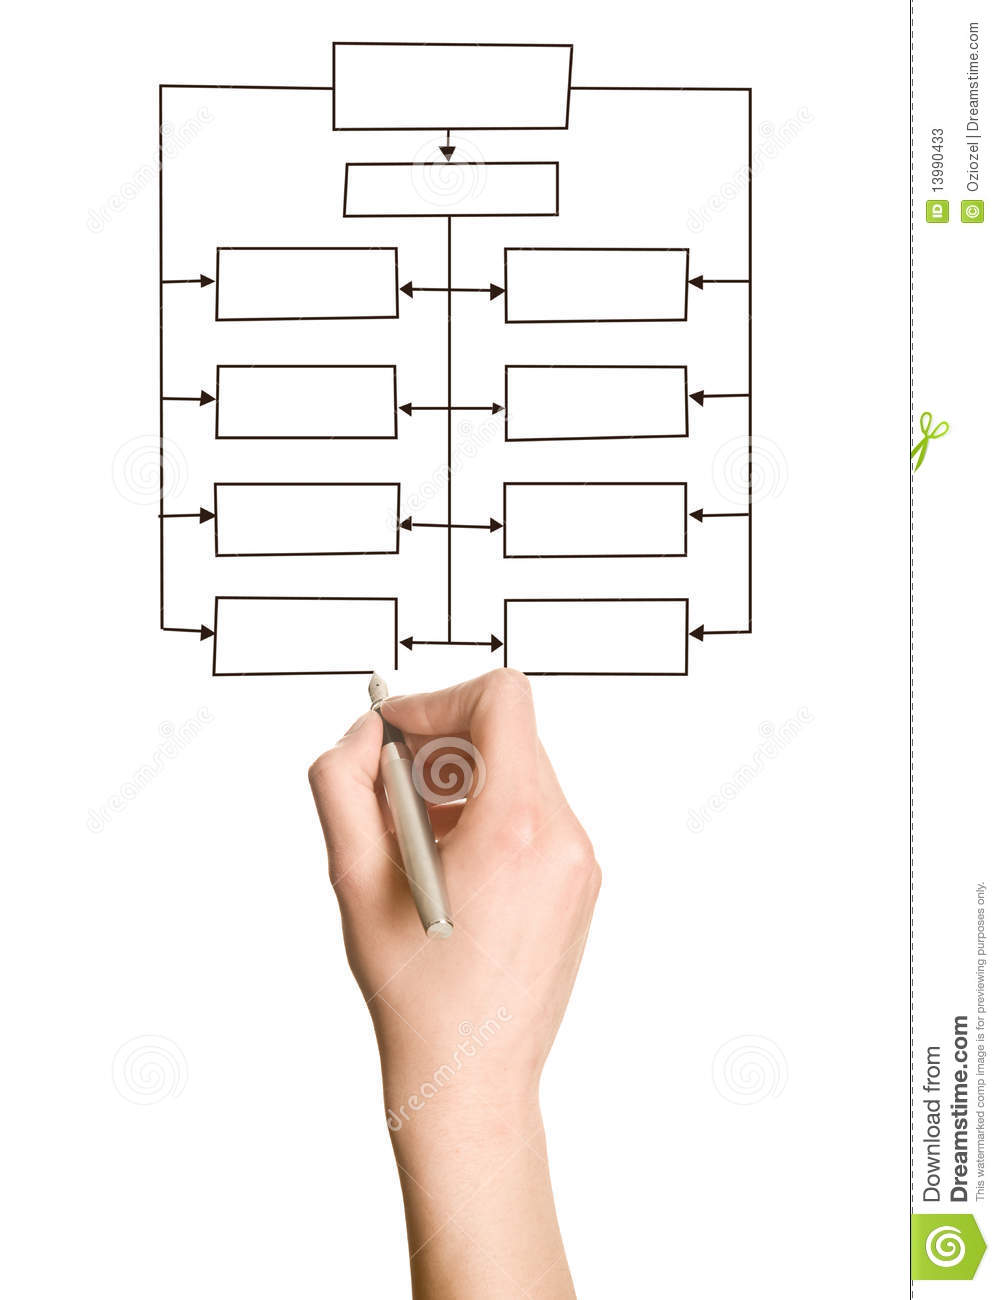 Hand Drawing Blank Organization Chart Photos Image 13990433 – Blank Organizational Chart